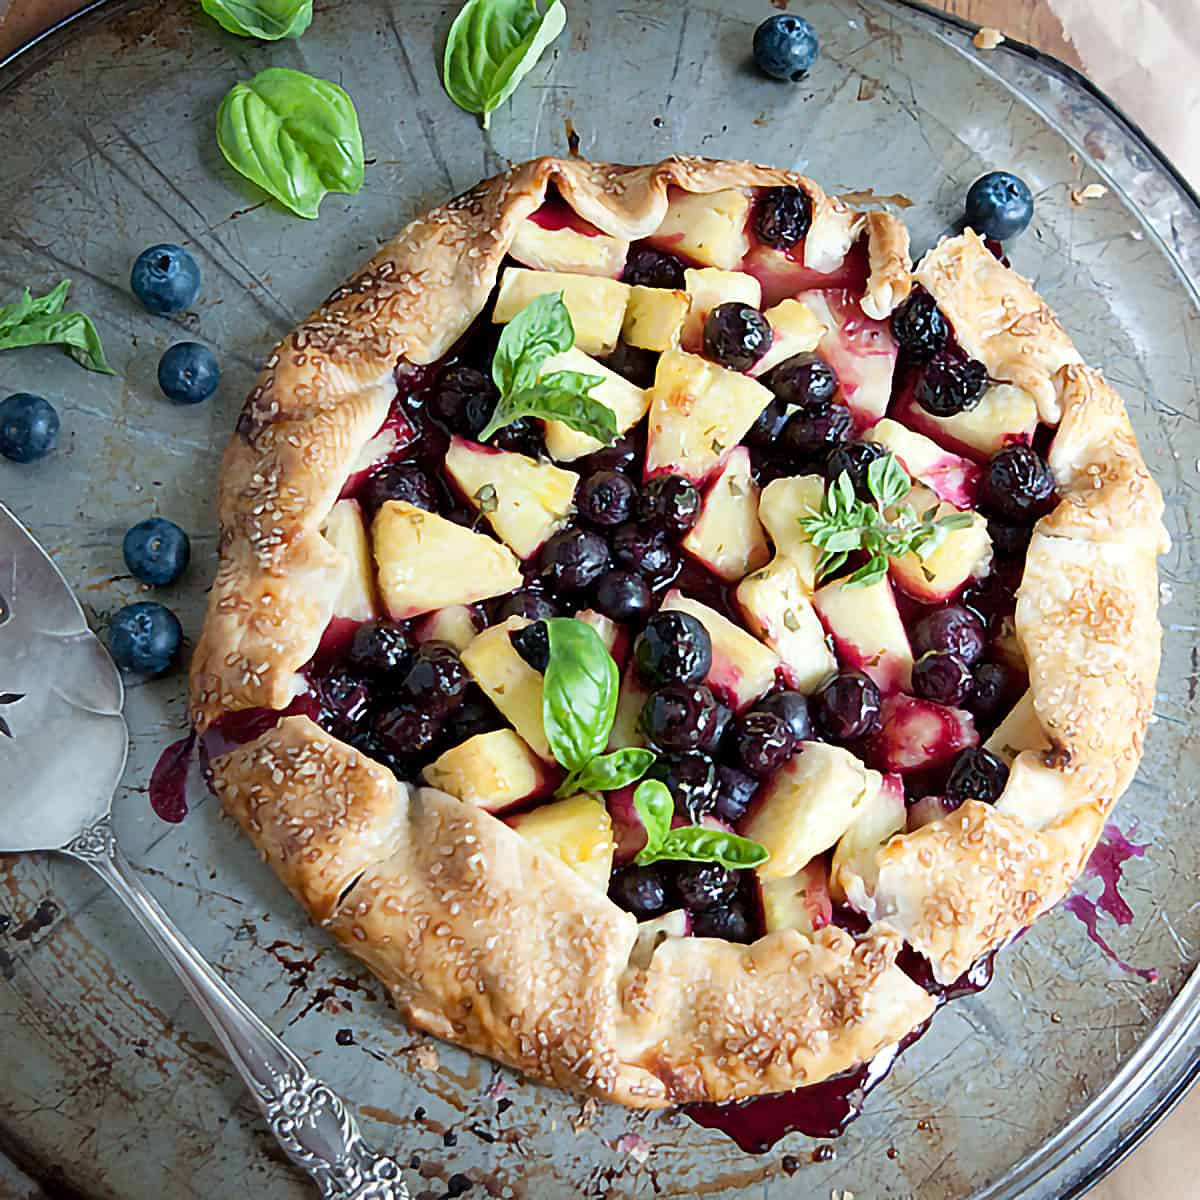 A freeform Pineapple Blueberry Basil Galette using purchased pie crust. A most unusual dessert full of fruity, herby flavors. From @NevrEnoughThyme https://www.lanascooking.com/pineapple-blueberry-basil-galette/